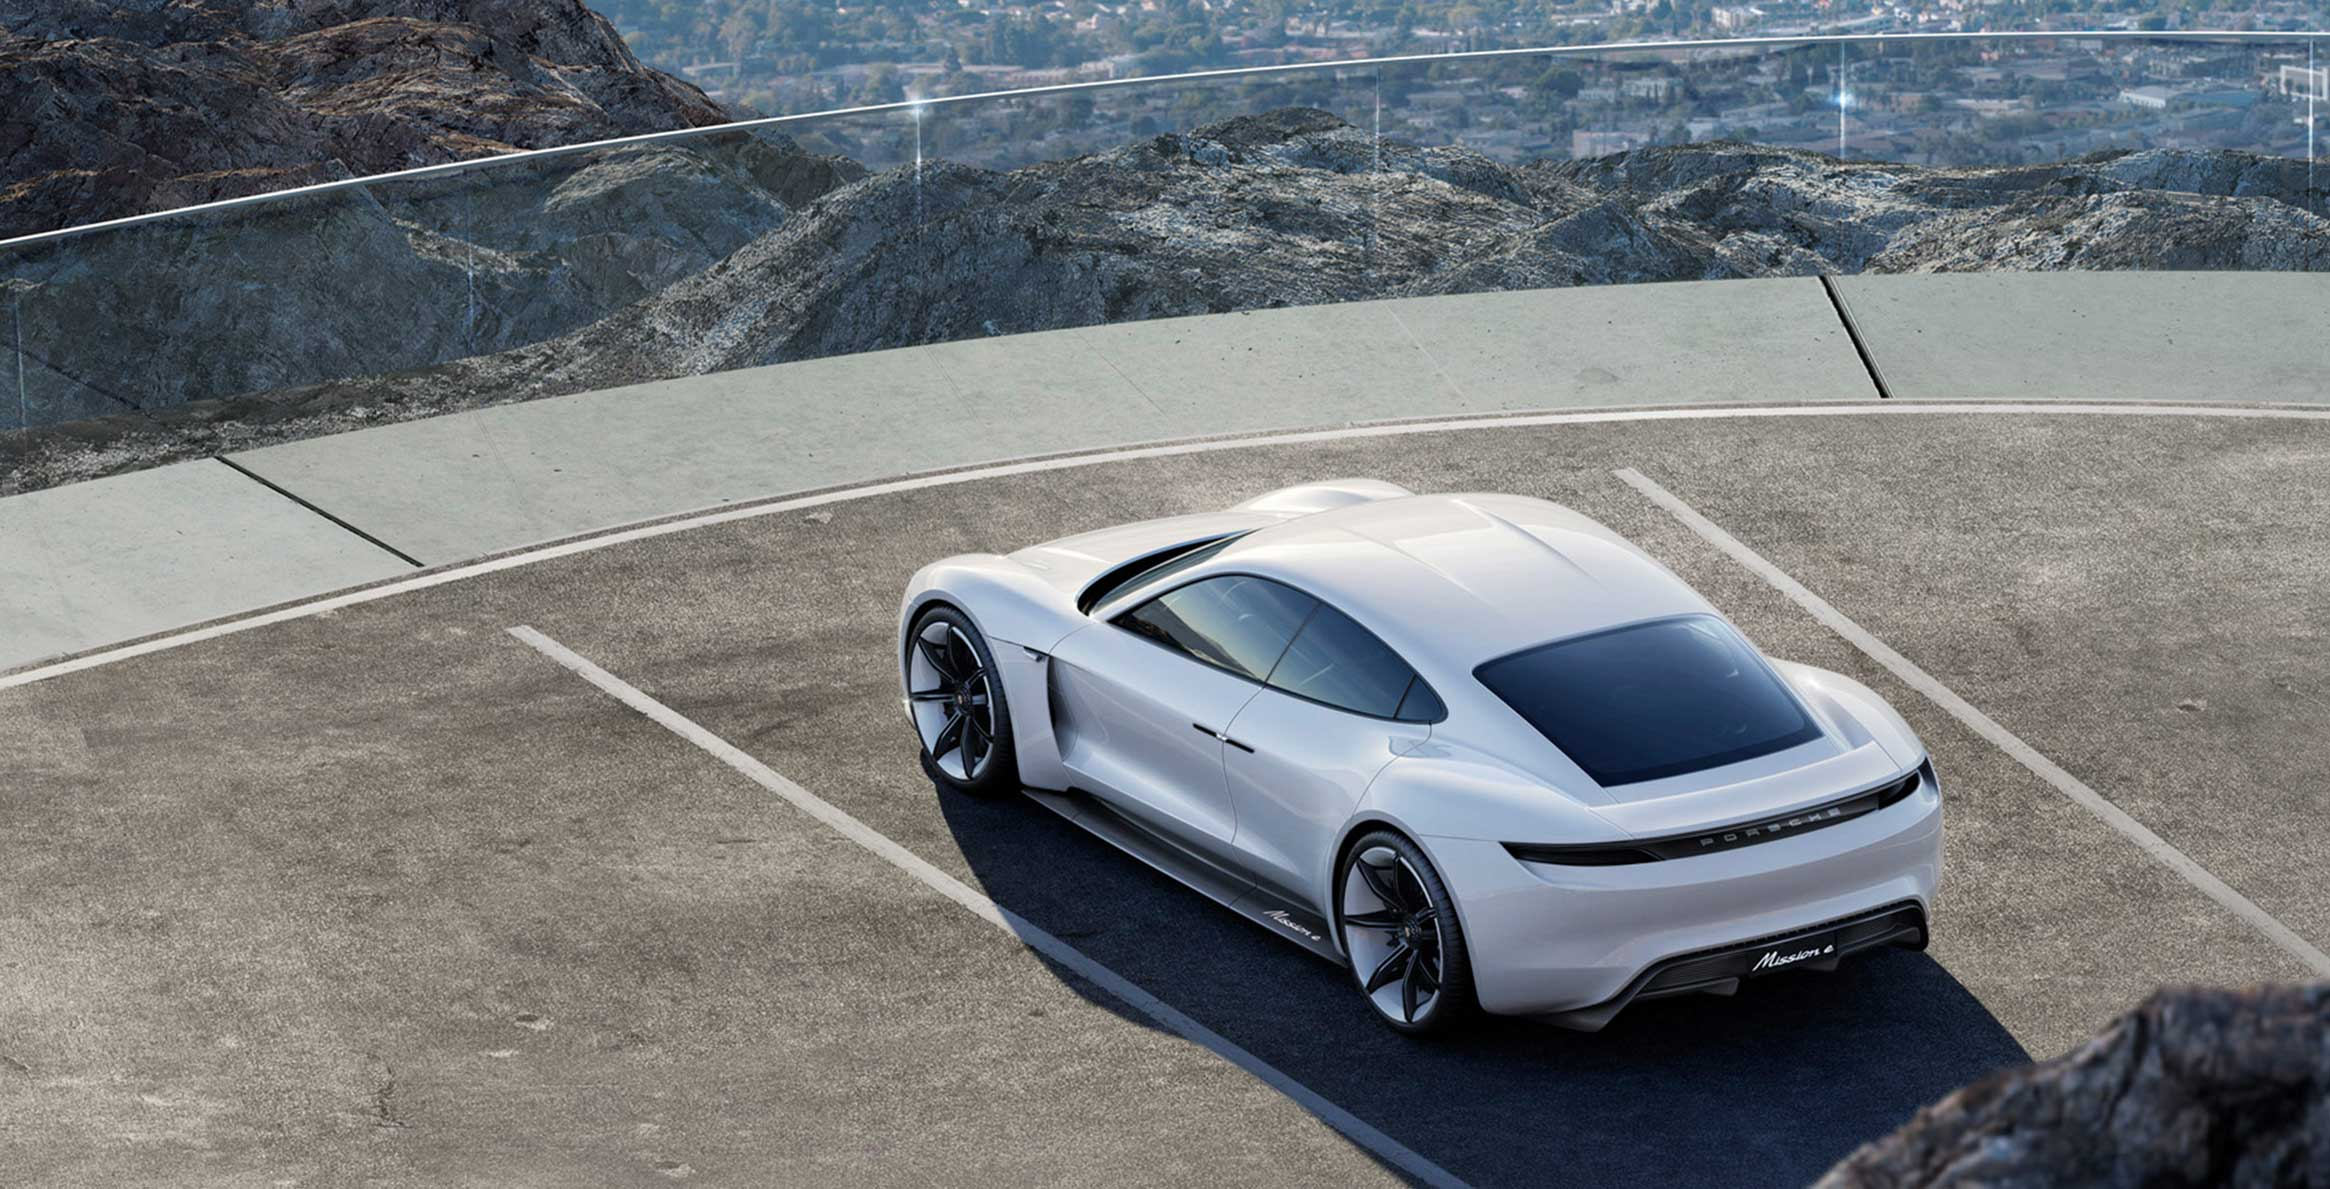 Powerful Porsche Taycan Turbo EV will cost $130K+